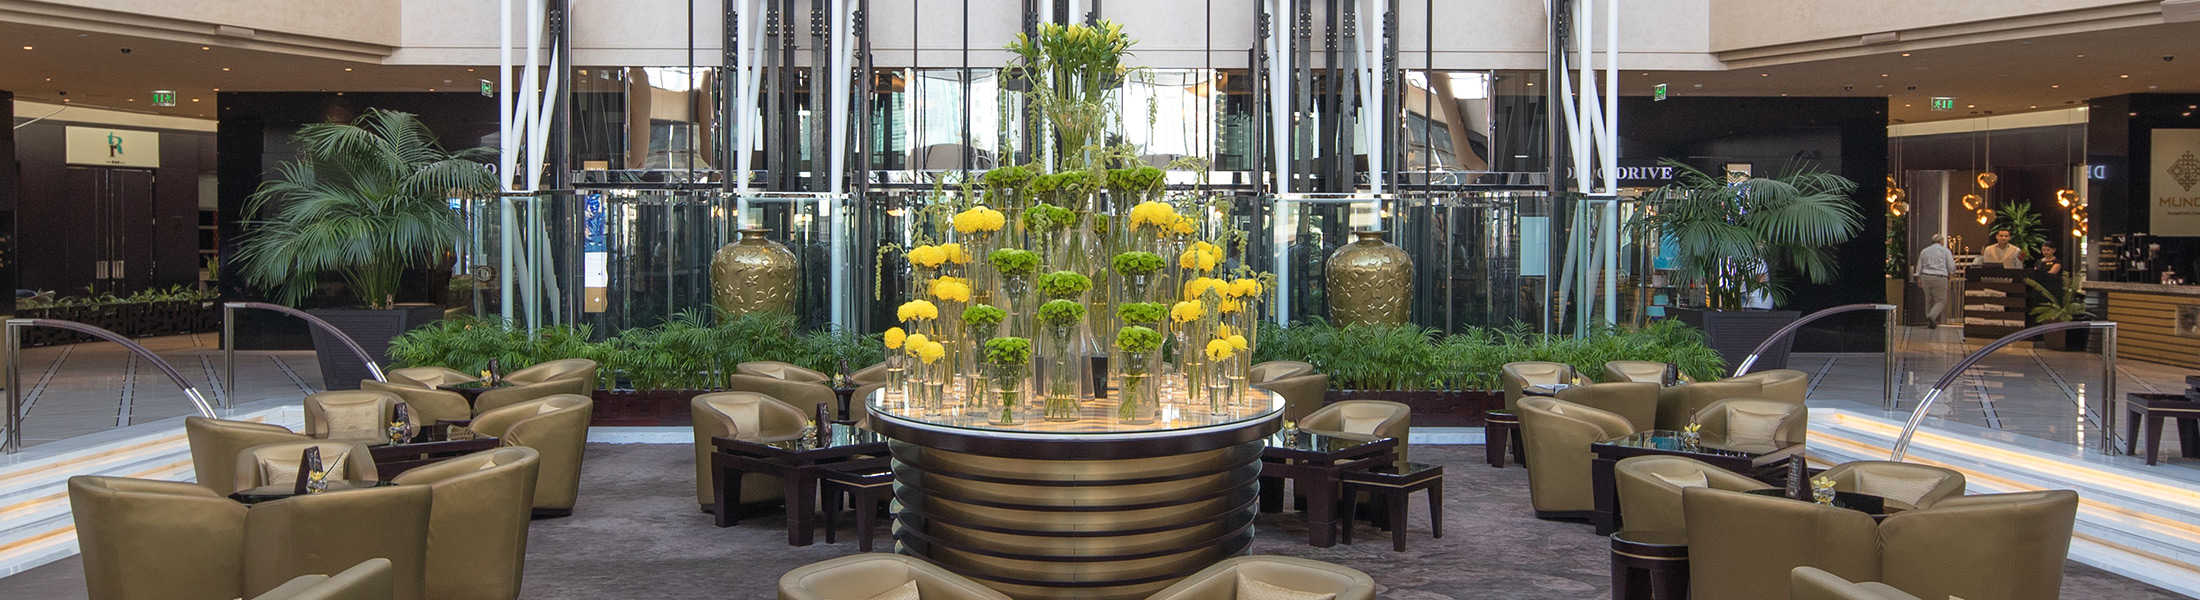 Flower display in the lobby of Jumeirah Emirates Towers